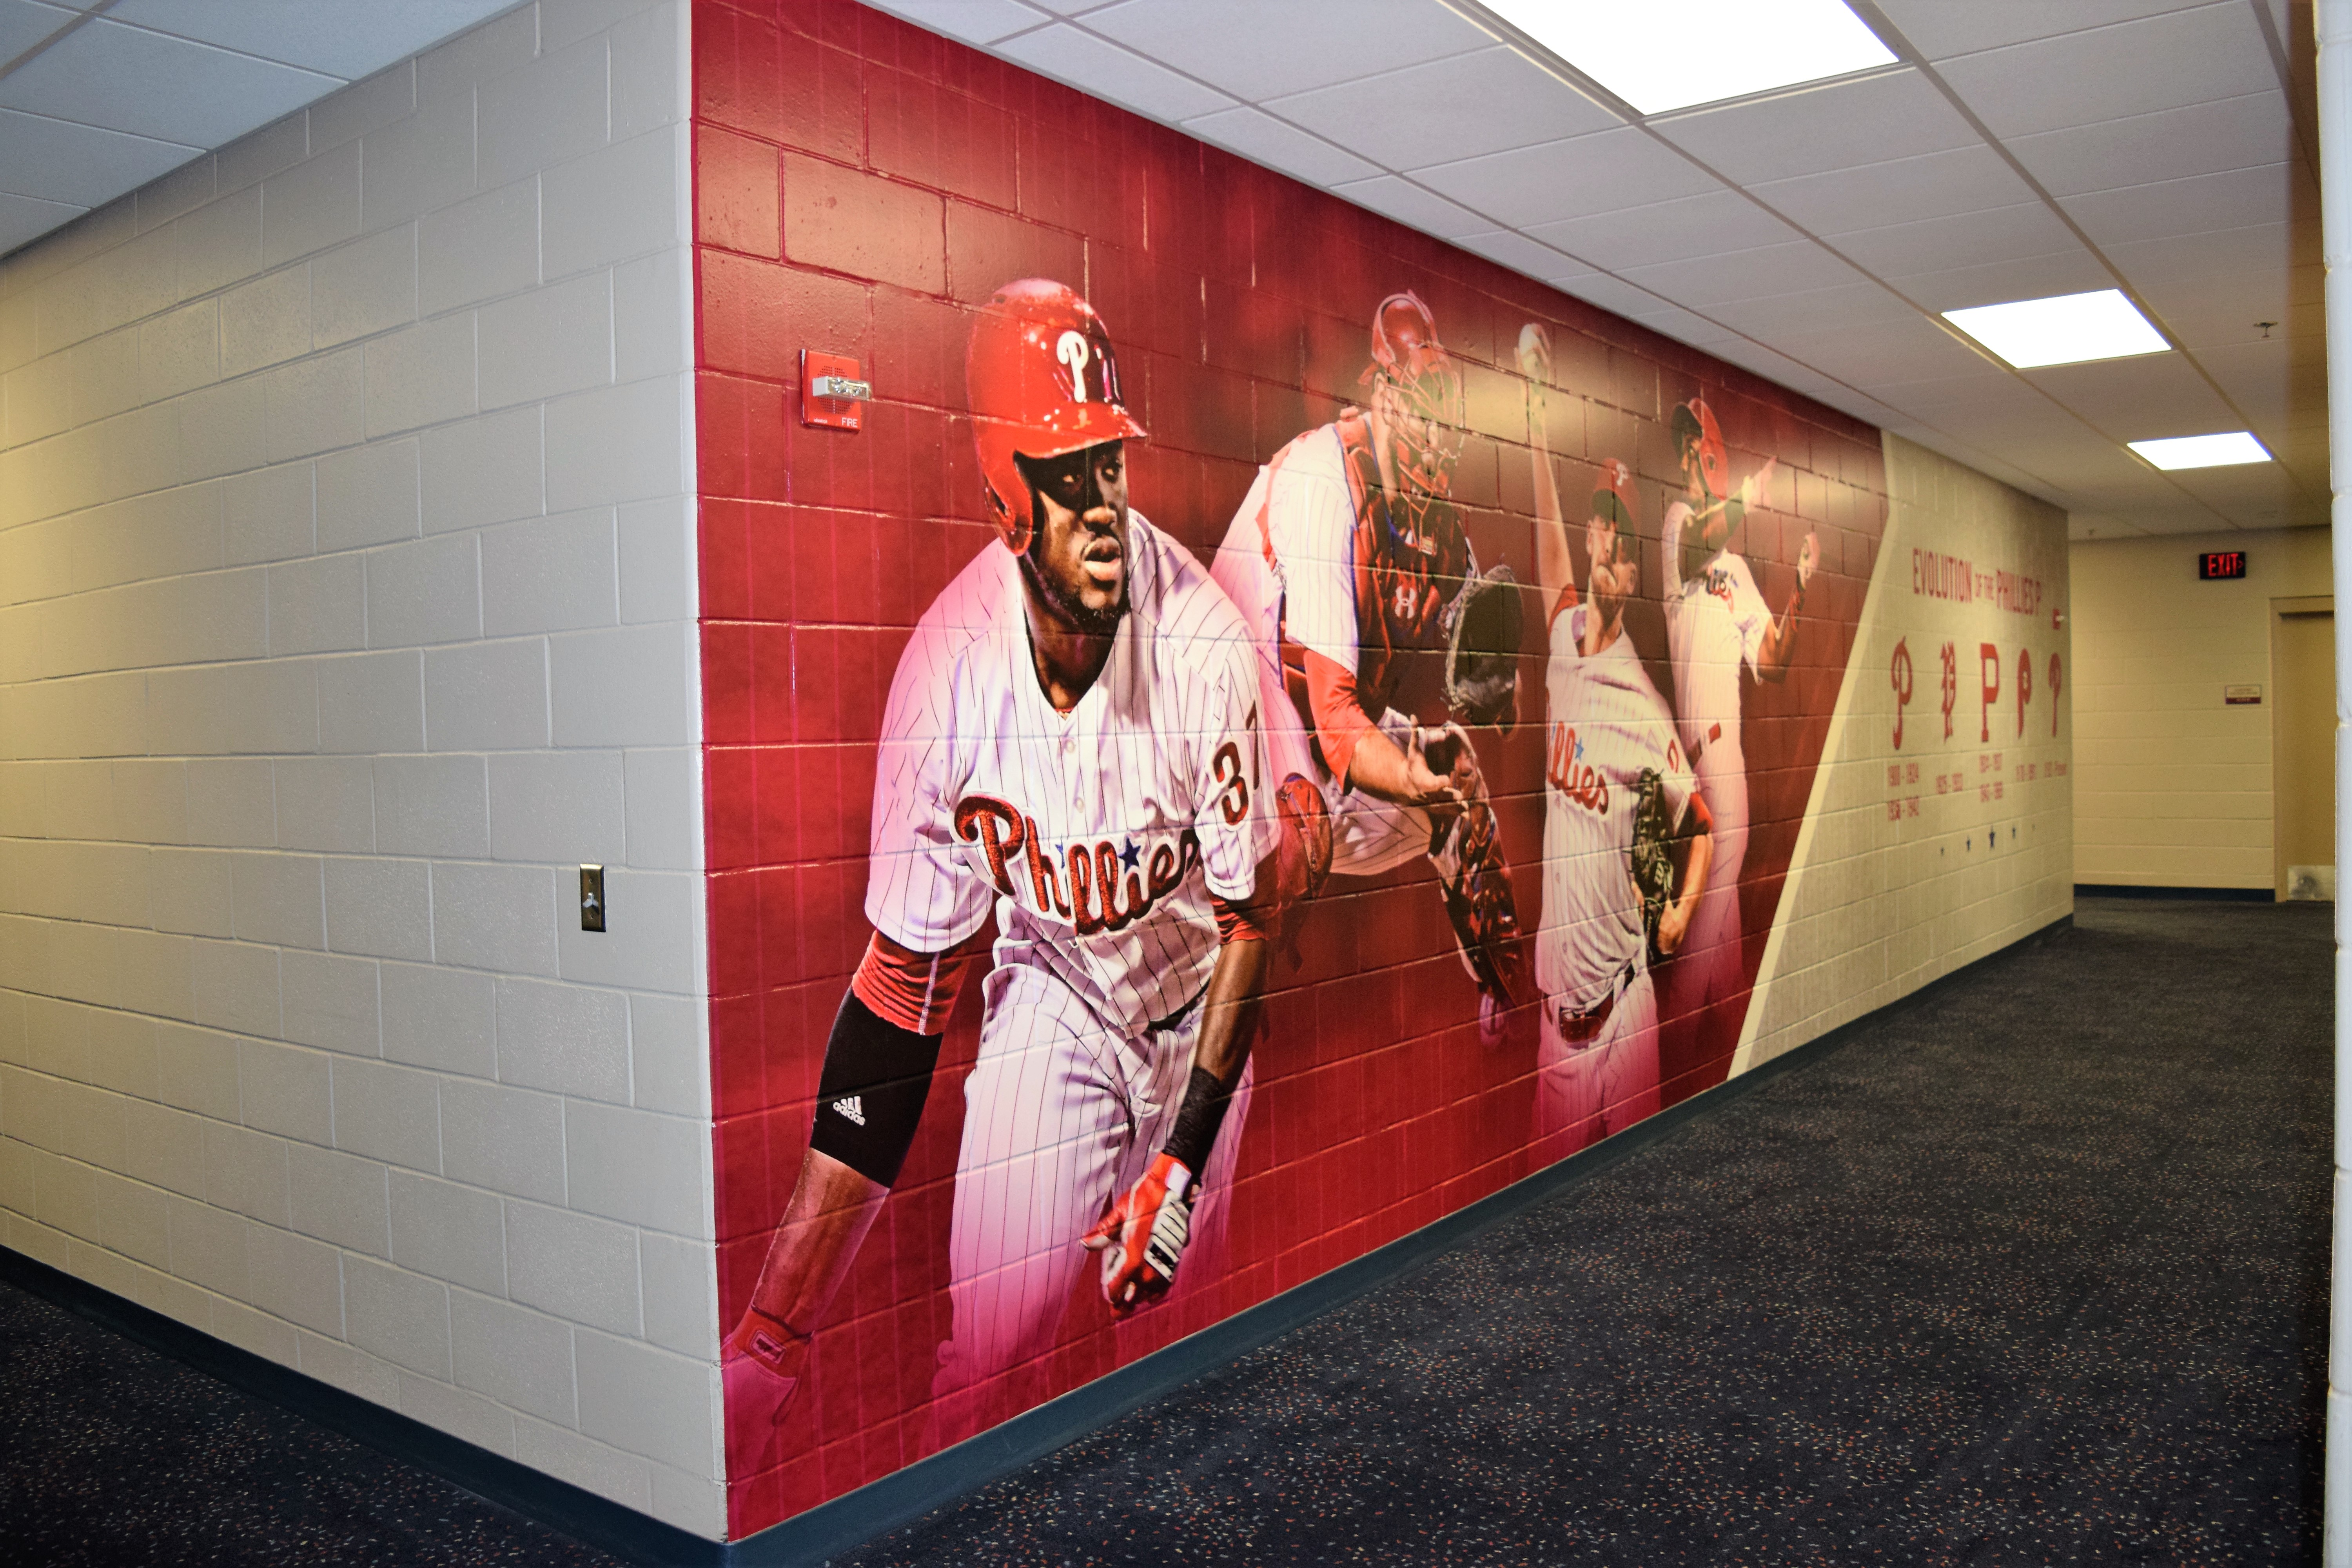 sports facility wall mural designs by oai visual branding rough texture wall mural